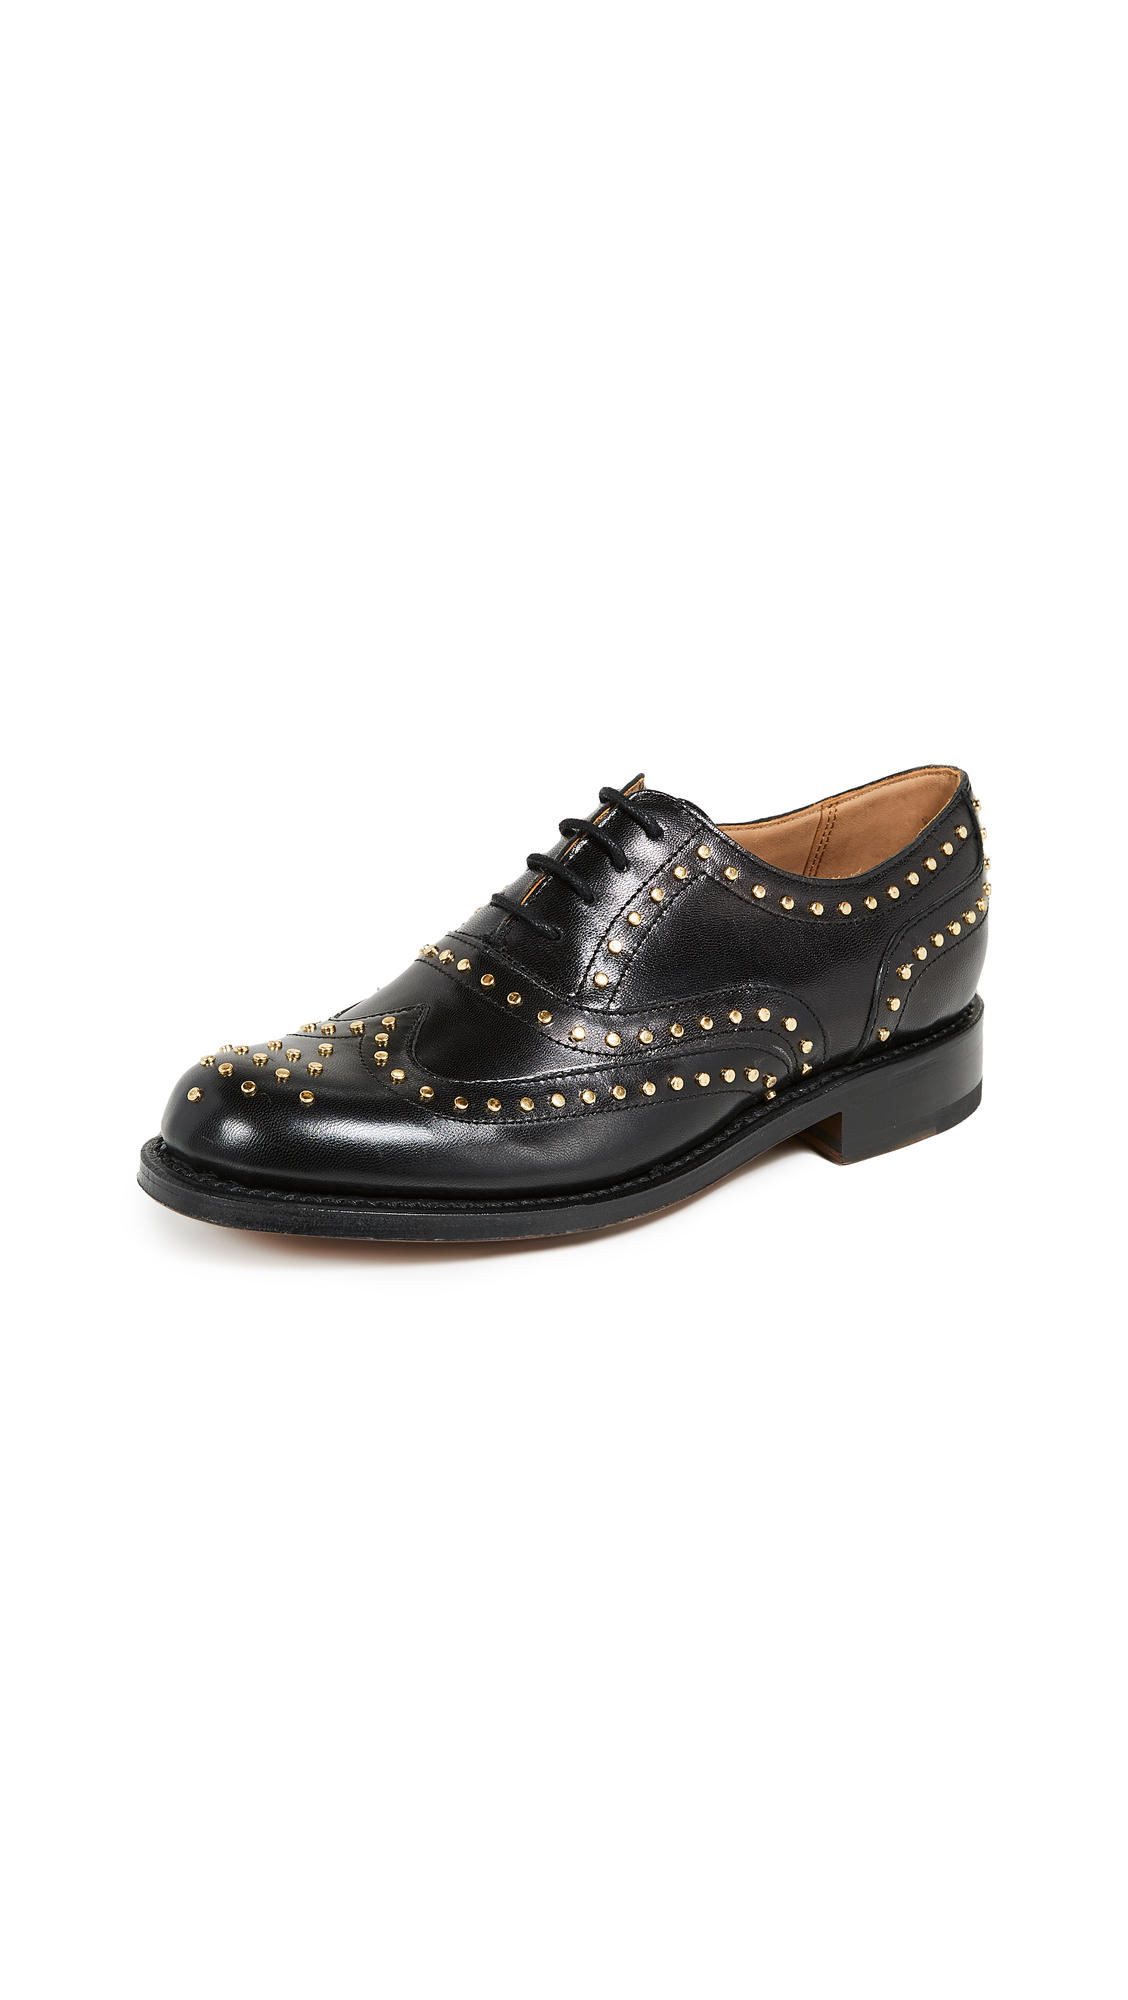 Grenson Rowena Oxford - Black